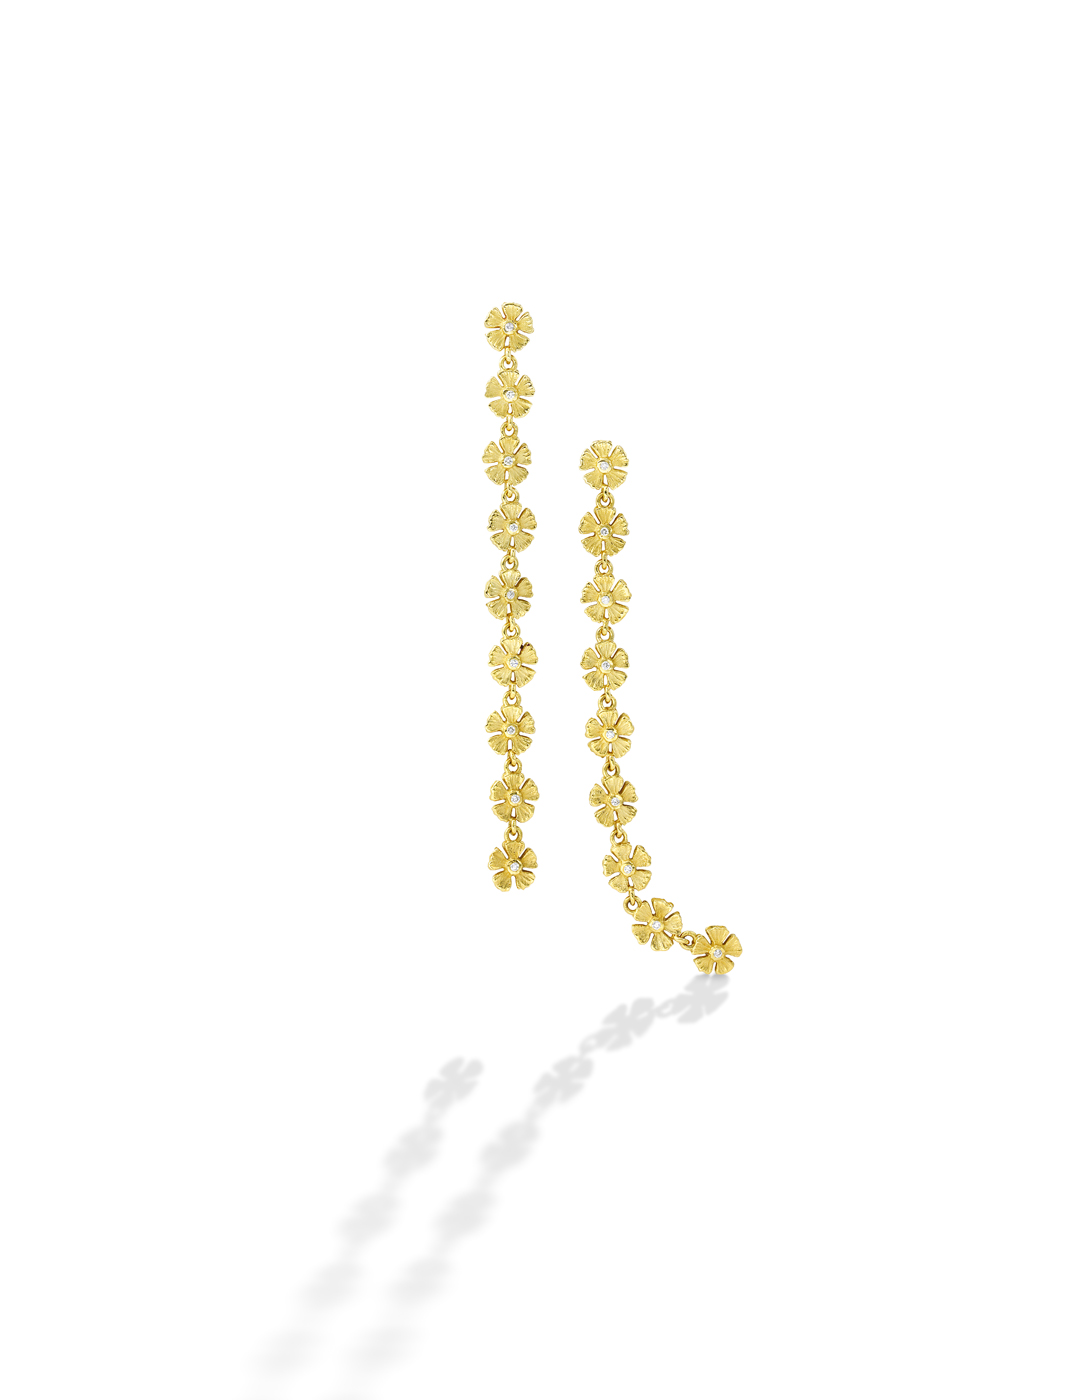 mish_products_earrings_StrawFlwr-Tiny-Lei-ER-1